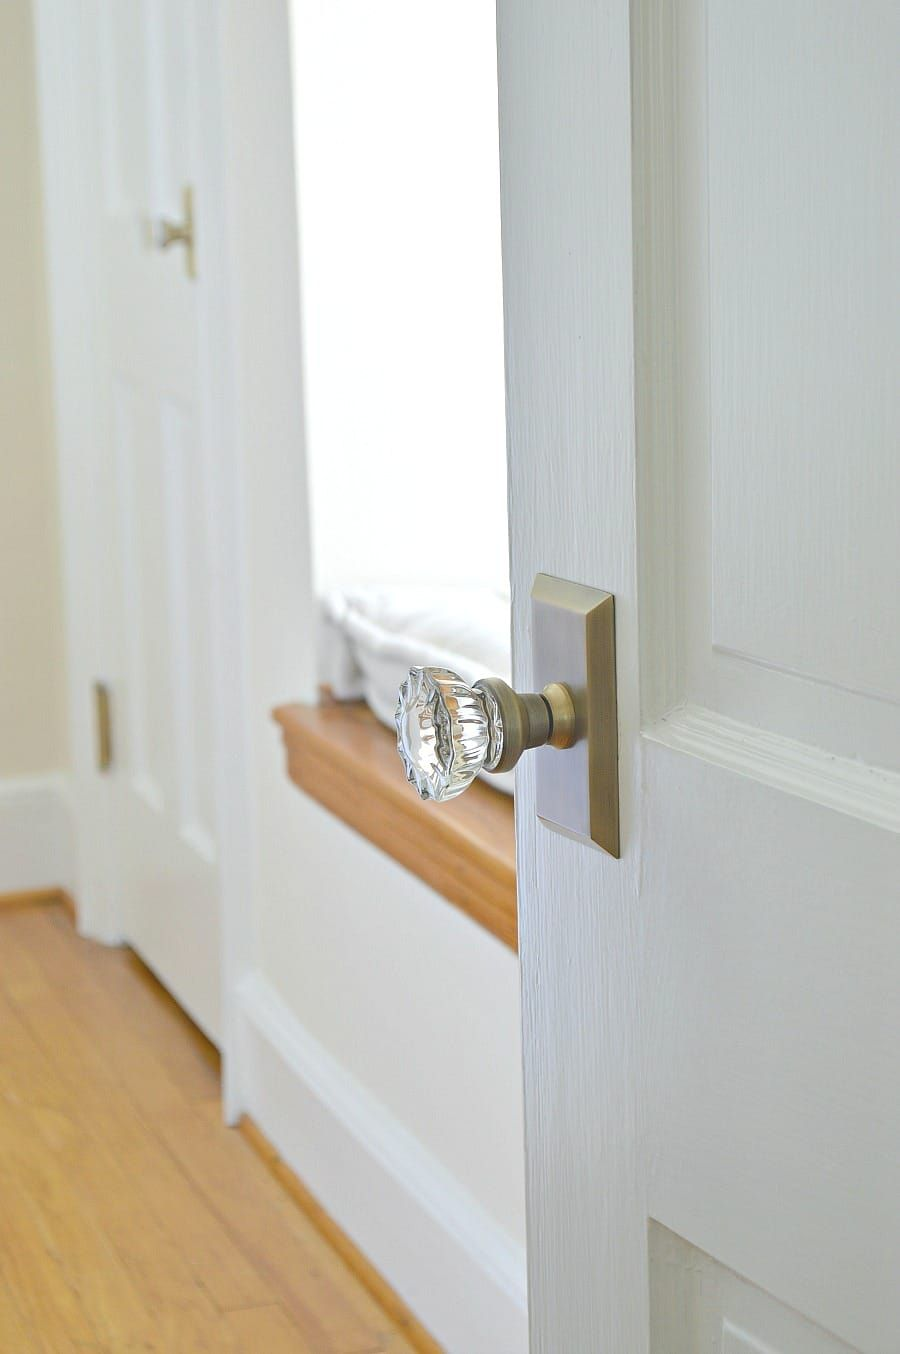 The Best Kept Secret To Installing New Door Hinges And Door Knobs #diy # Doorknobs #door